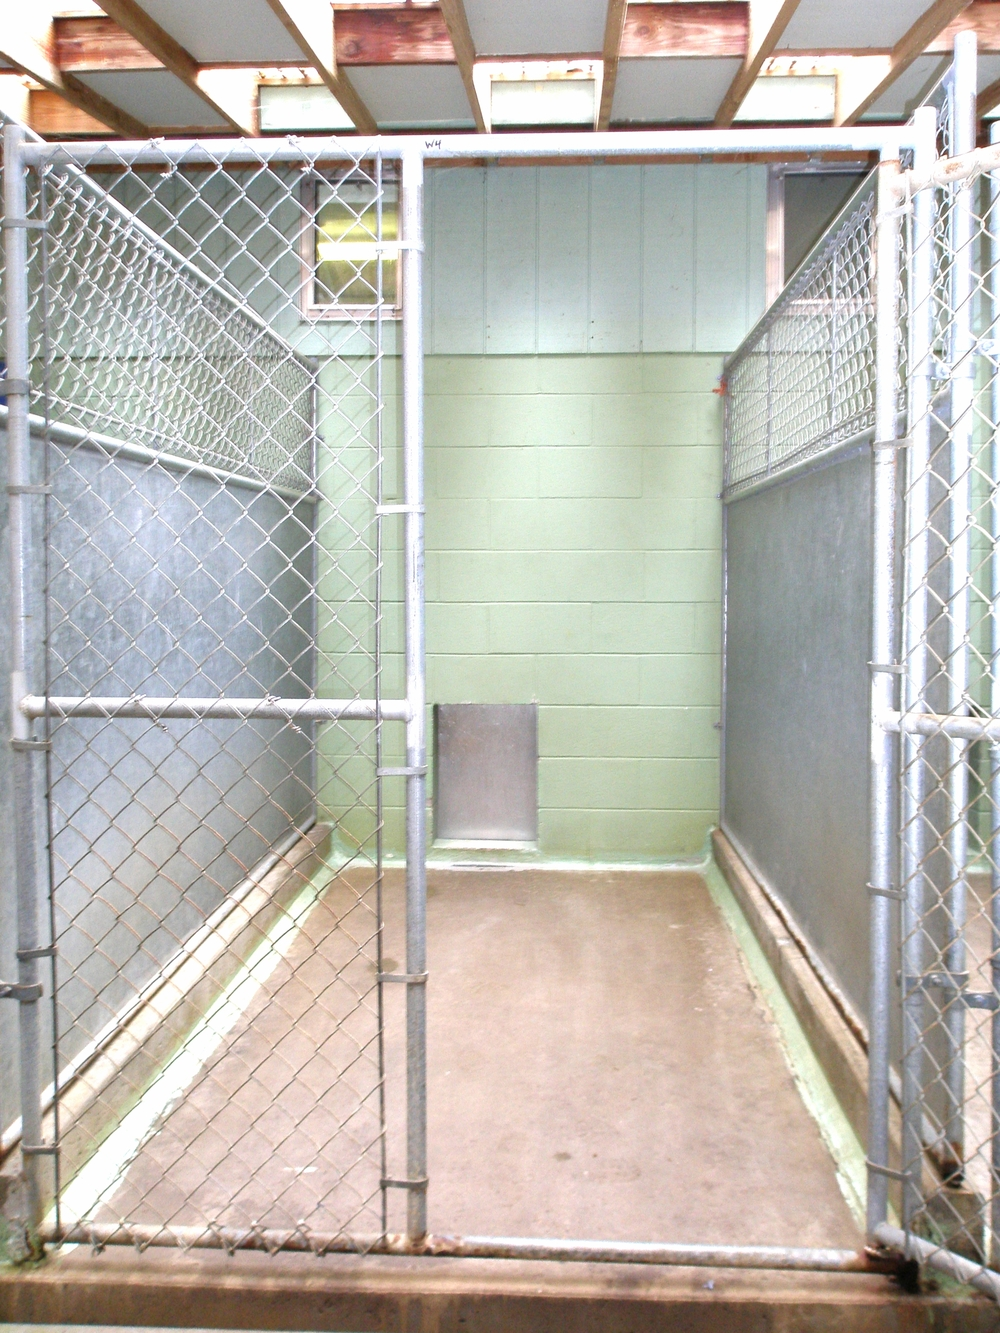 Kennel outside